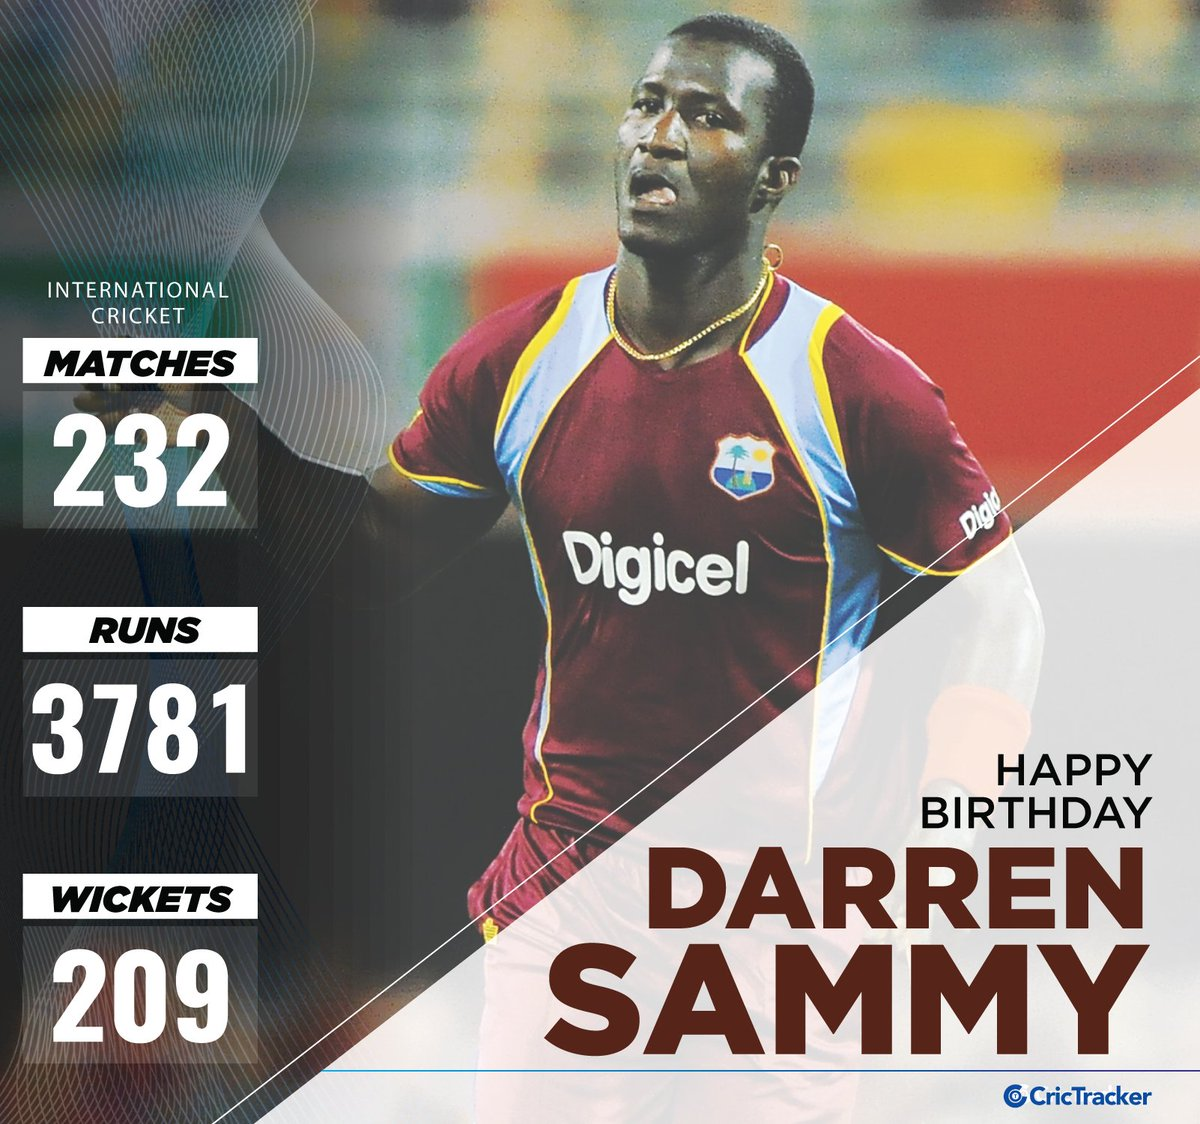 .@darensammy88, who led the West Indies to two T20 World Cup titles, is celebrating his 36th birthday today. Join us in wishing him a very happy birthday.